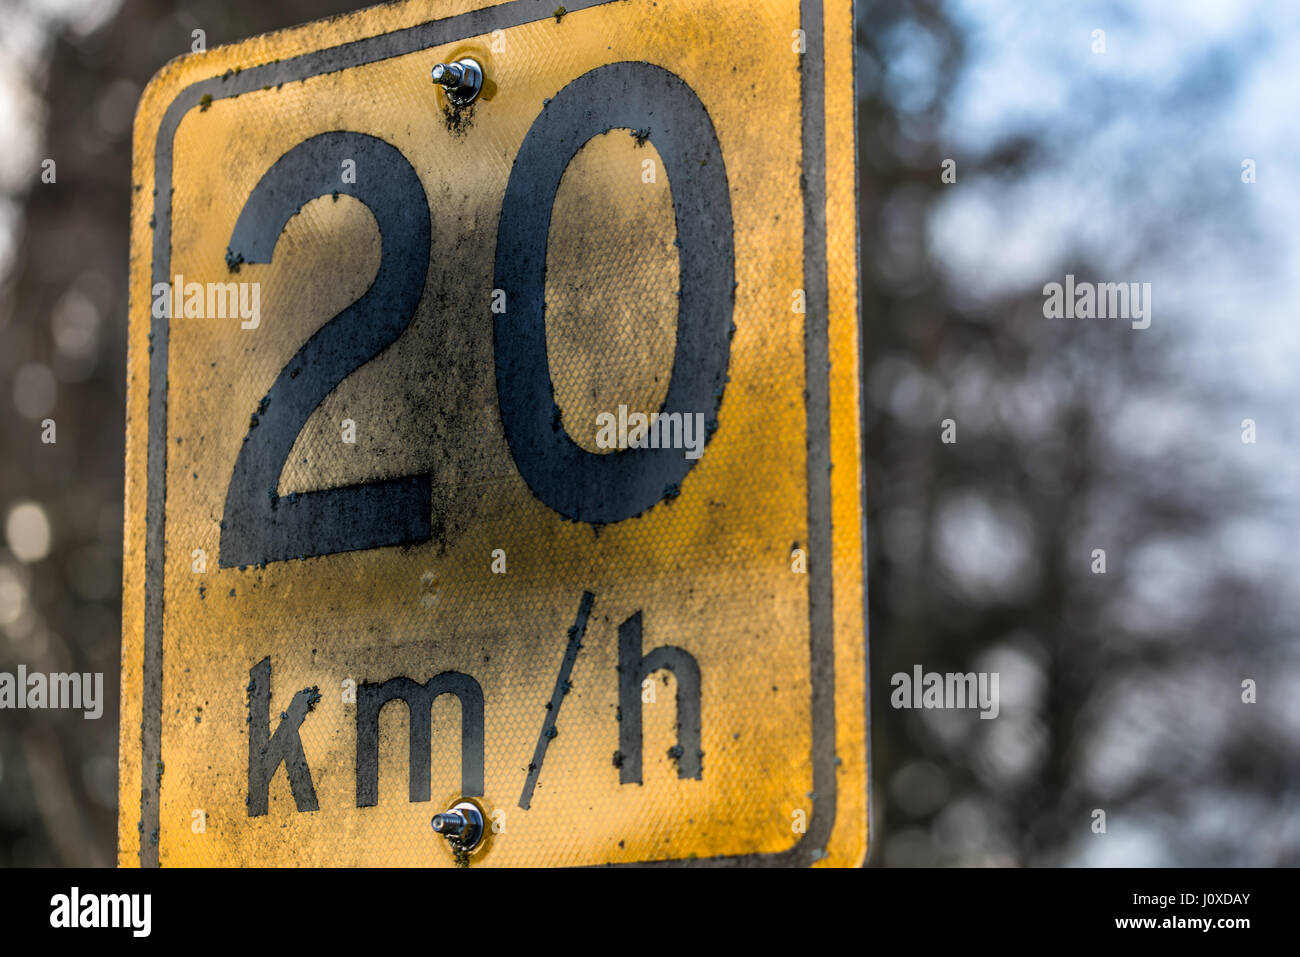 A closeup of 20km/h sign found on a street. Stock Photo